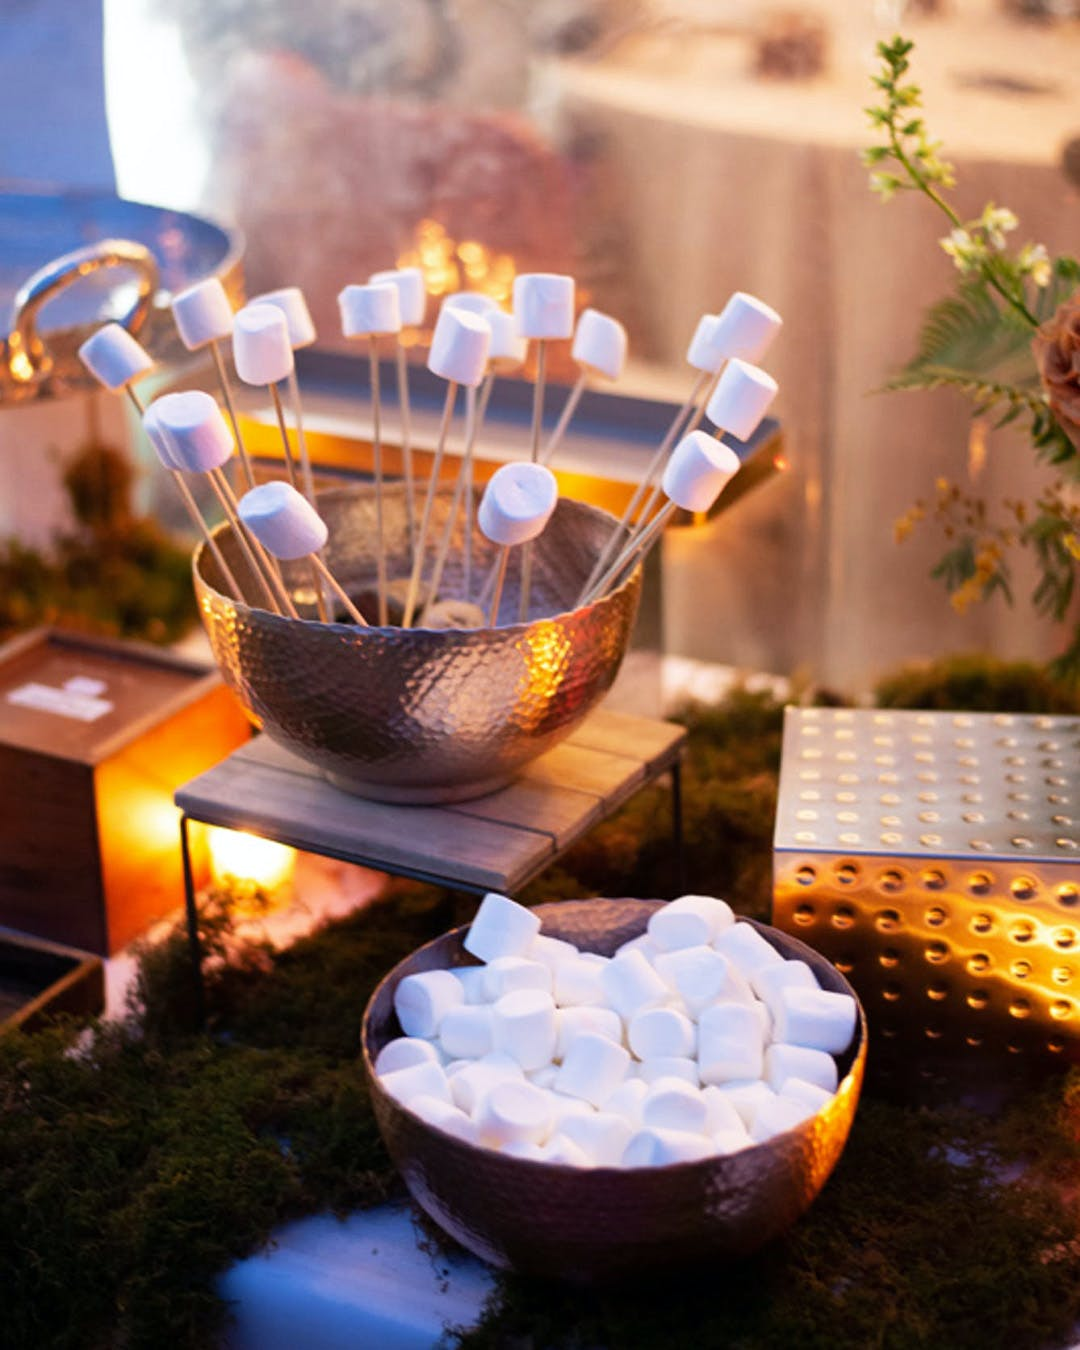 S'more station at engagement party | PartySlate